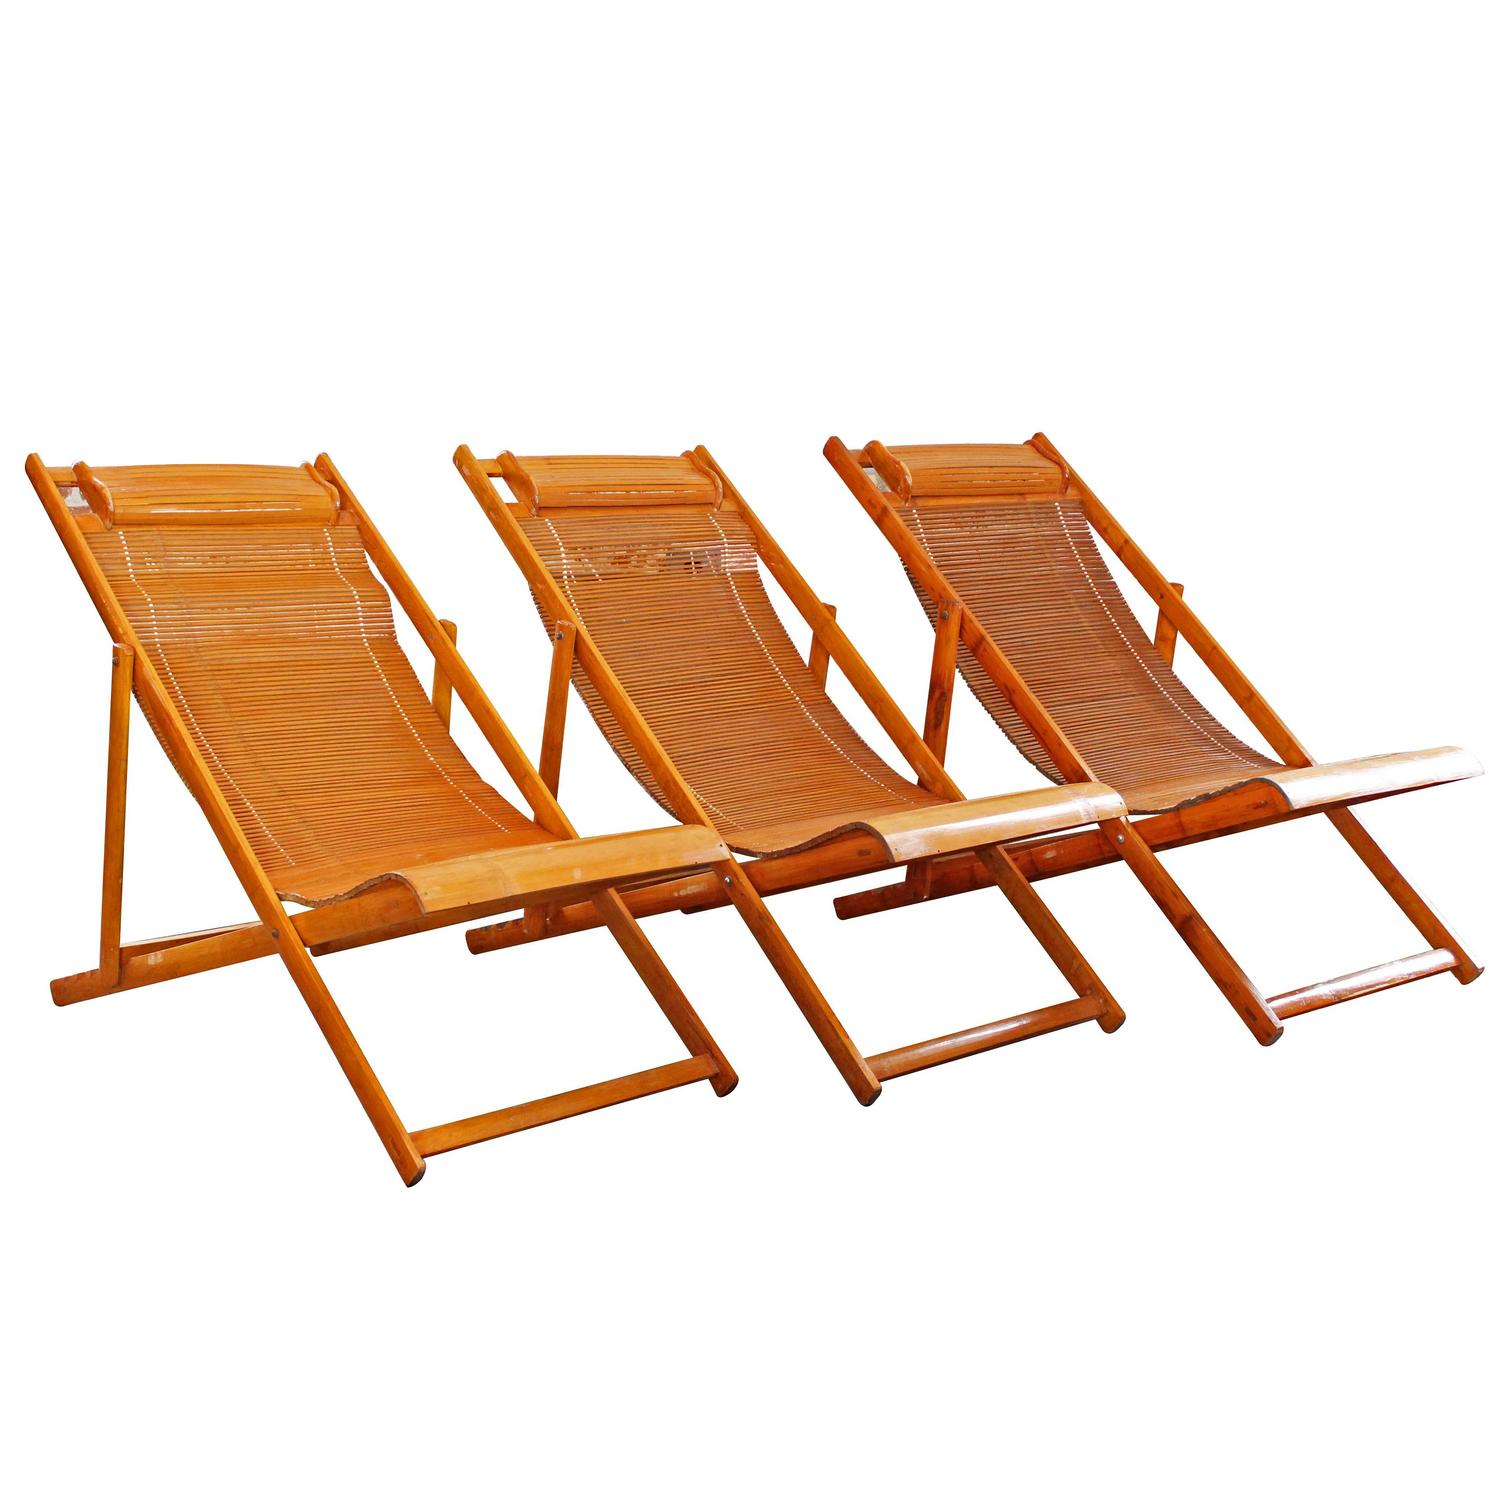 Fold Up Outdoor Chairs Vintage Bamboo Wood Japanese Deck Chairs Outdoor Fold Up